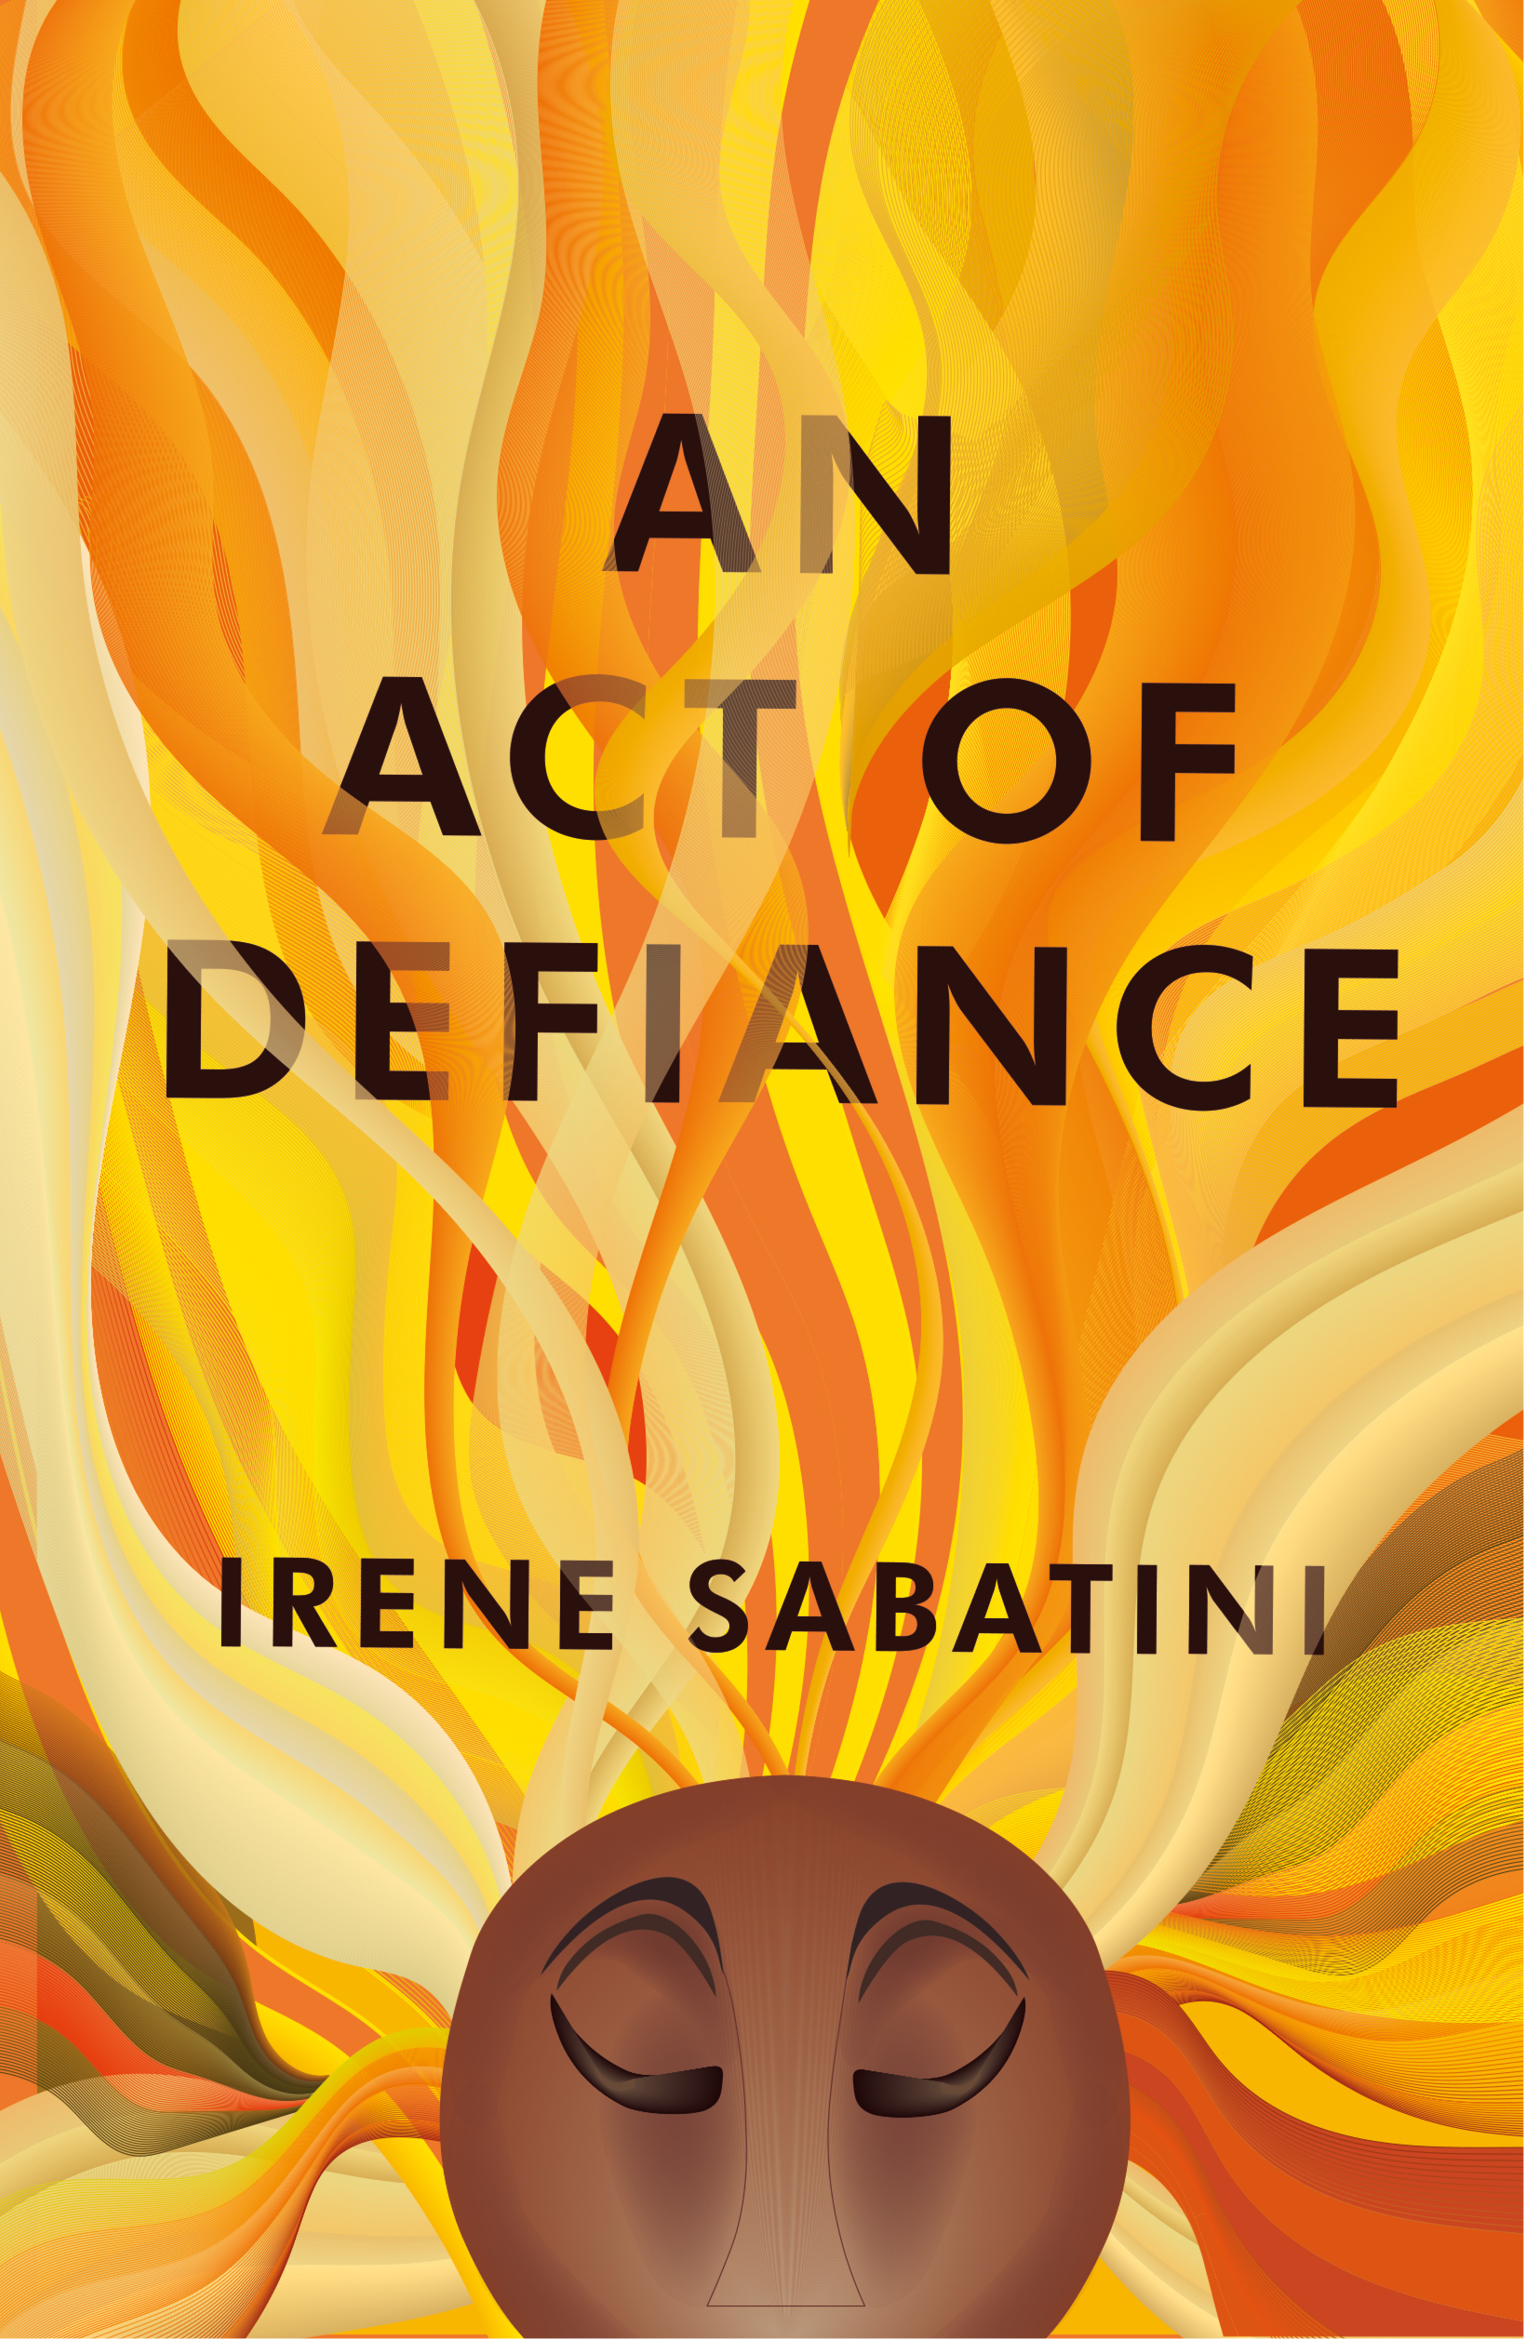 An Act of Defiance by Irene Sabatini